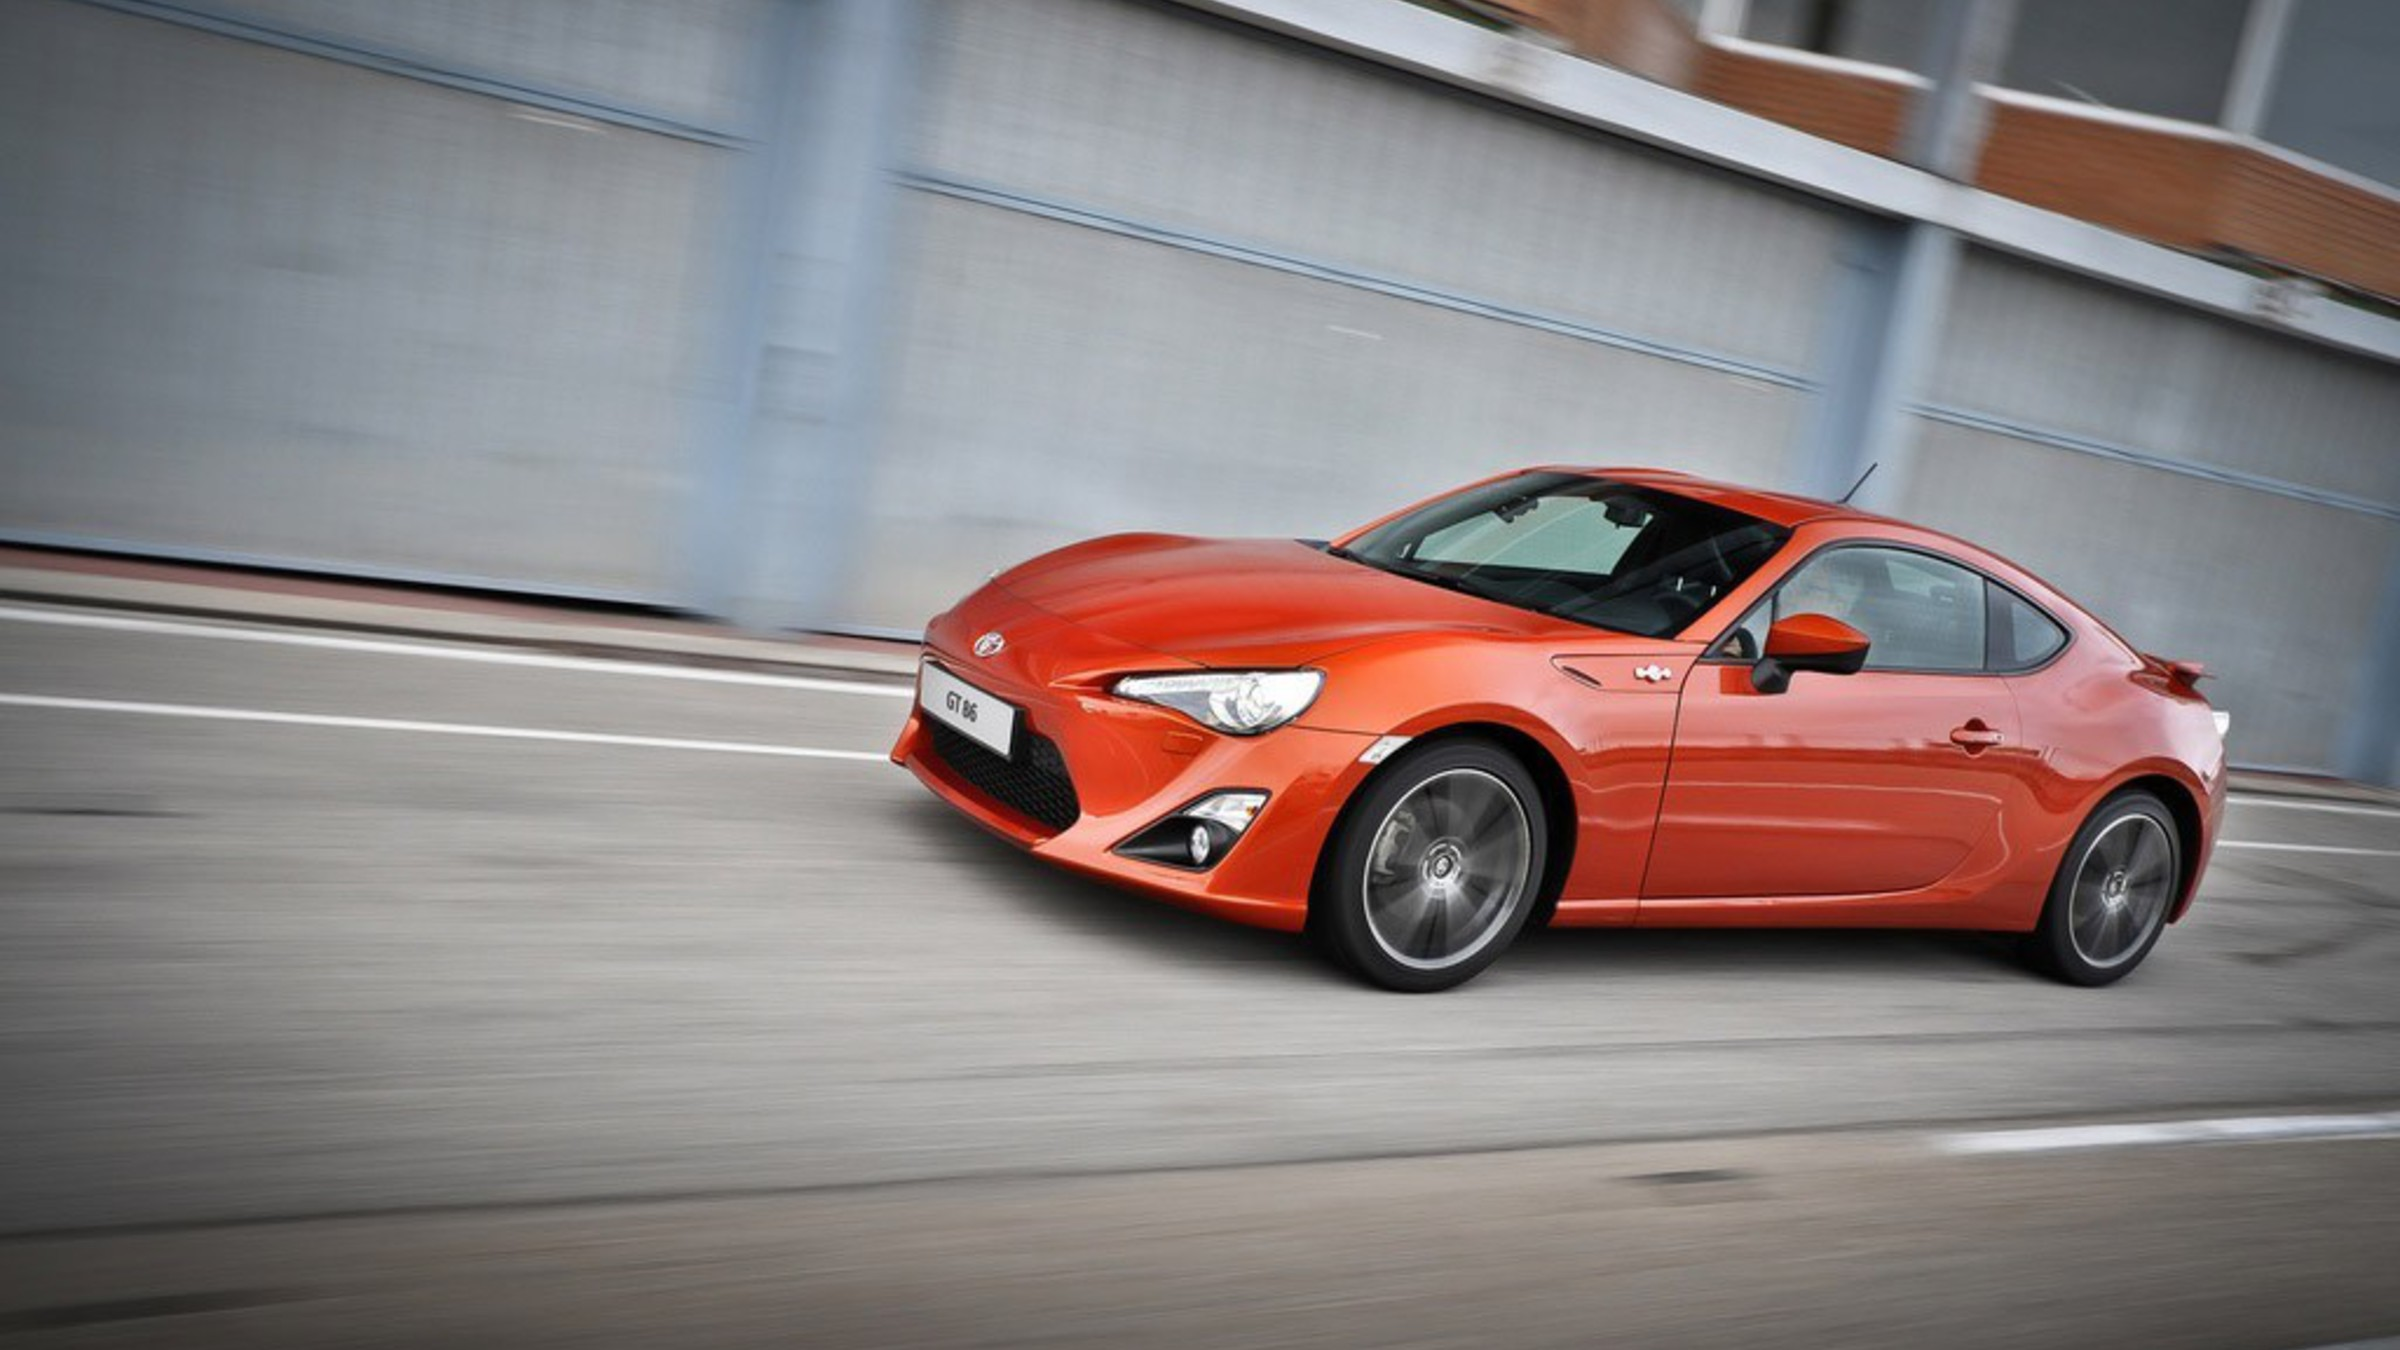 Toyota gt86 wallpaper 377 PC en 2400x1350